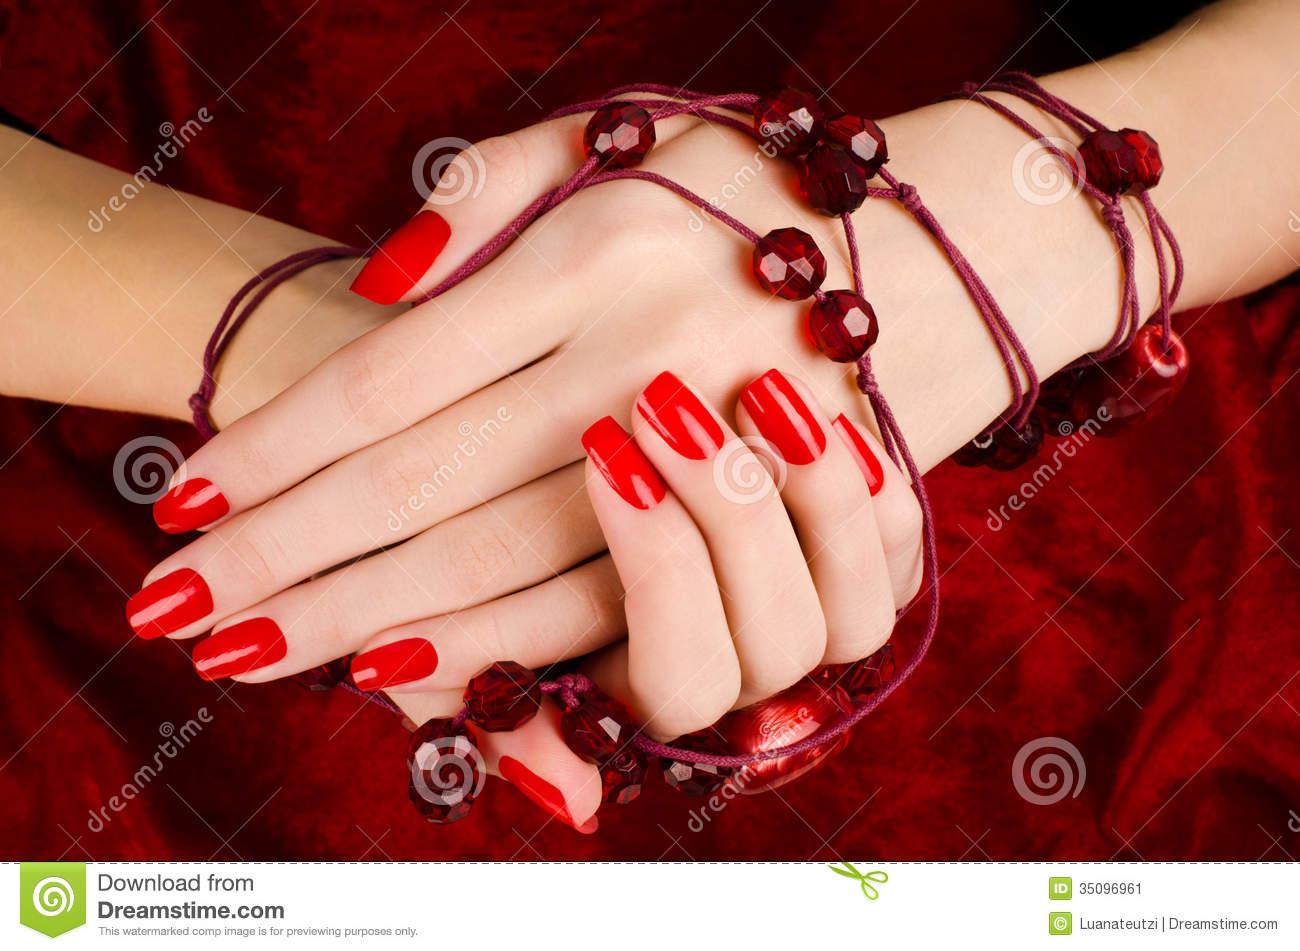 close-up-beautiful-female-hands-sexy-red-manicure-woman-velvet-background-35096961.jpg